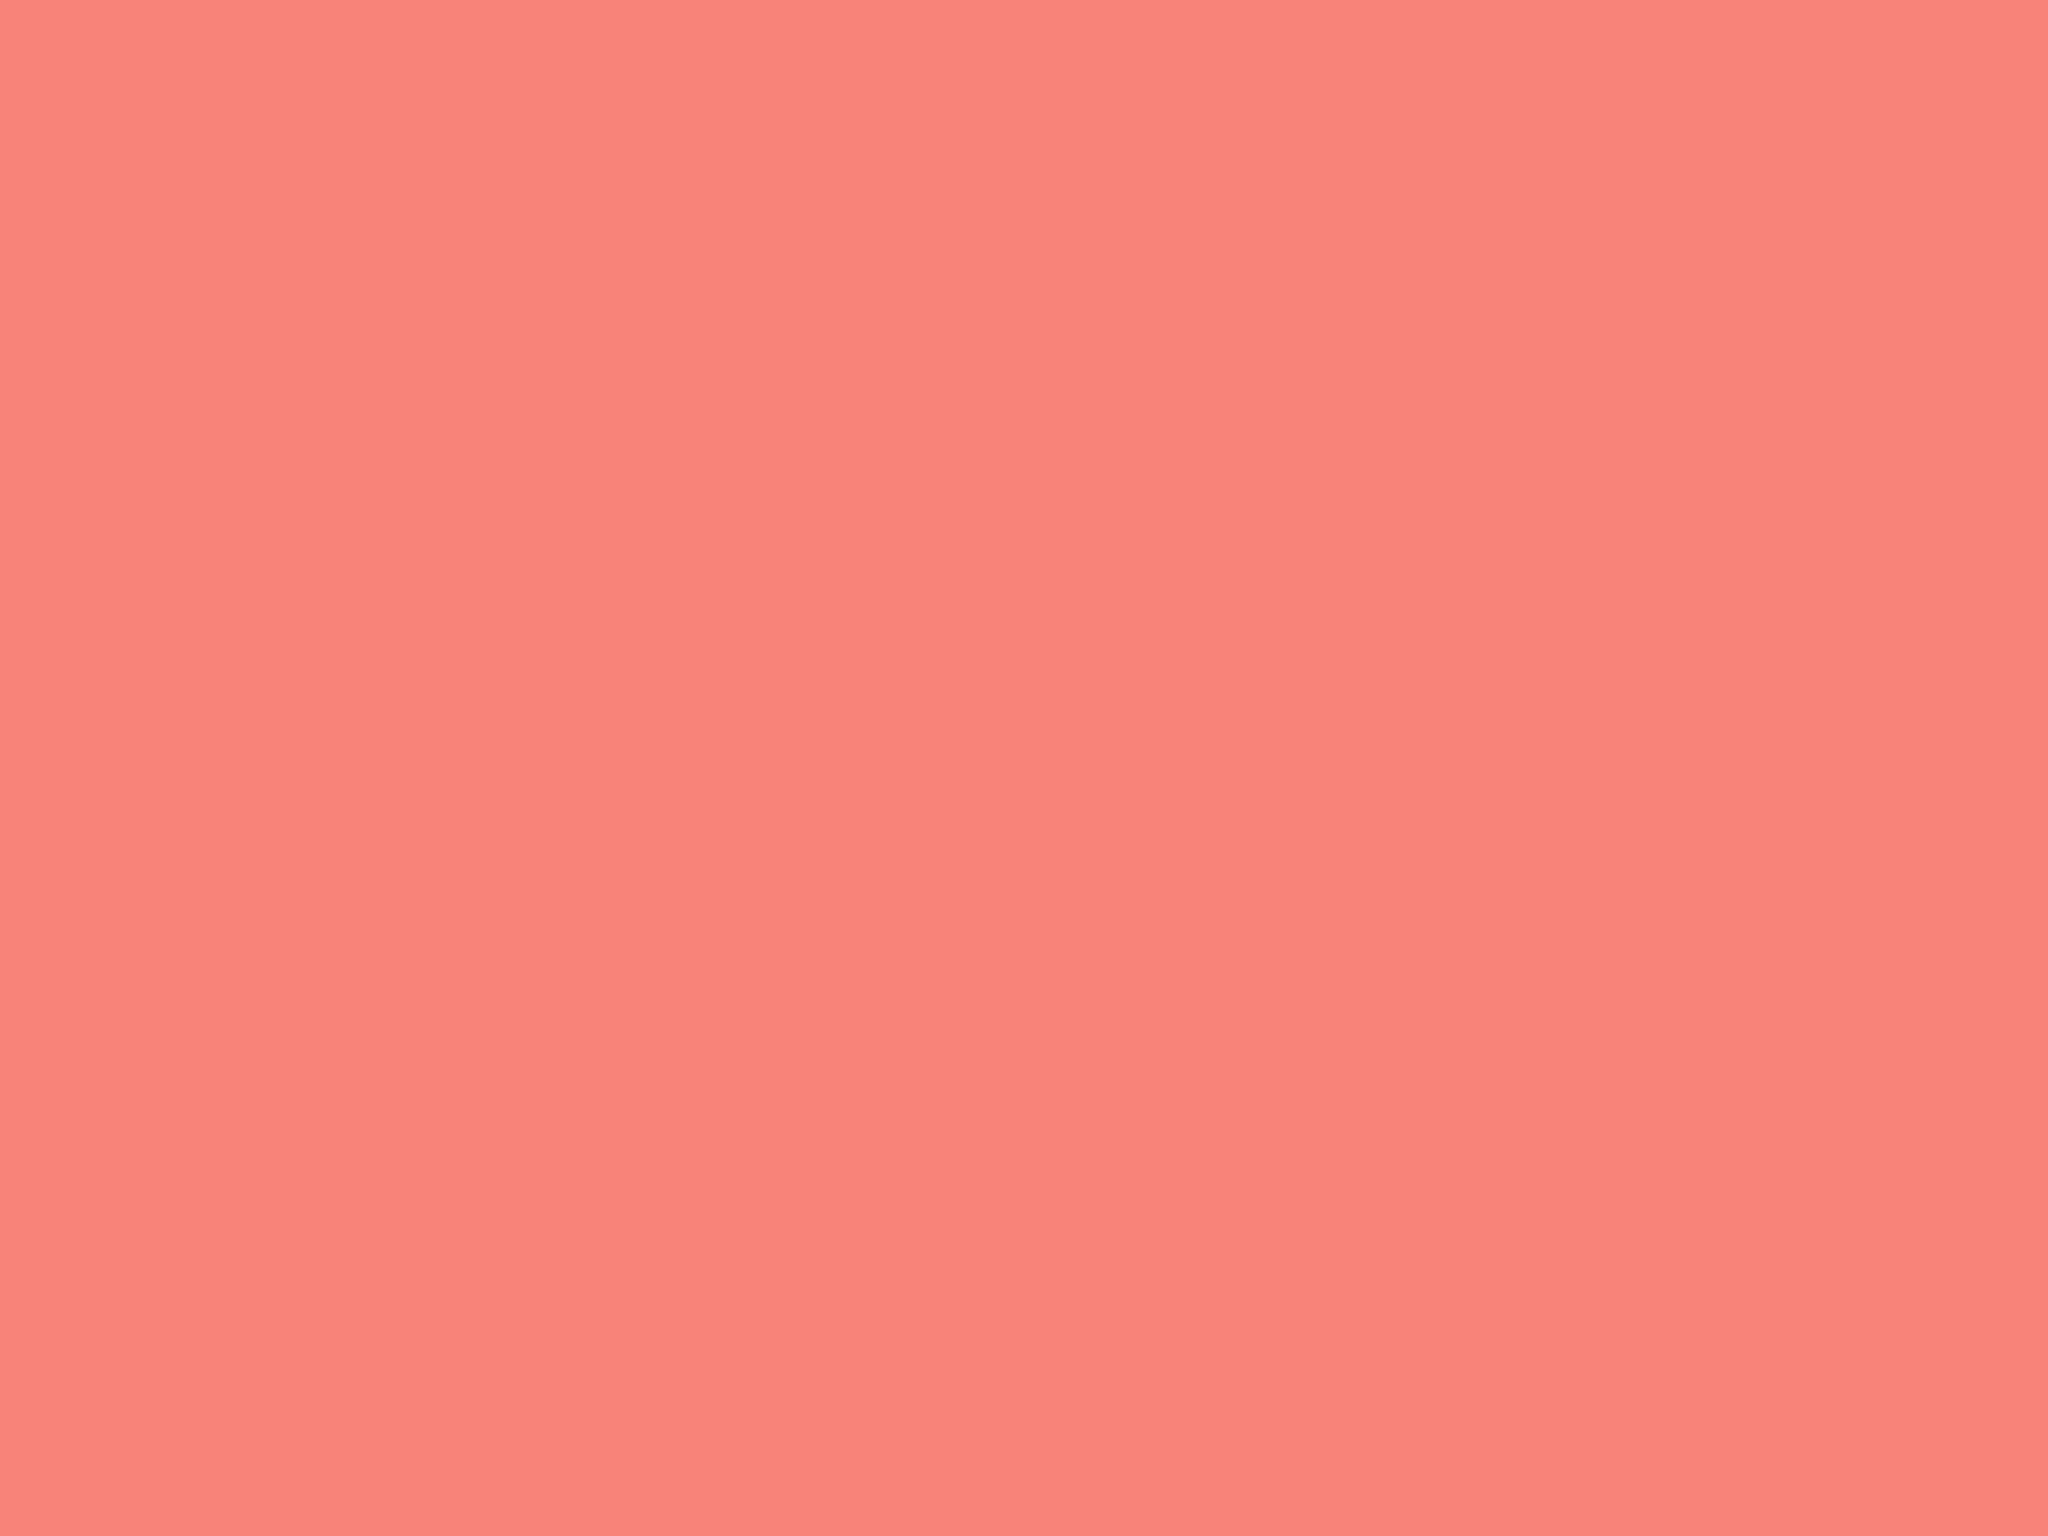 2048x1536 Tea Rose Orange Solid Color Background